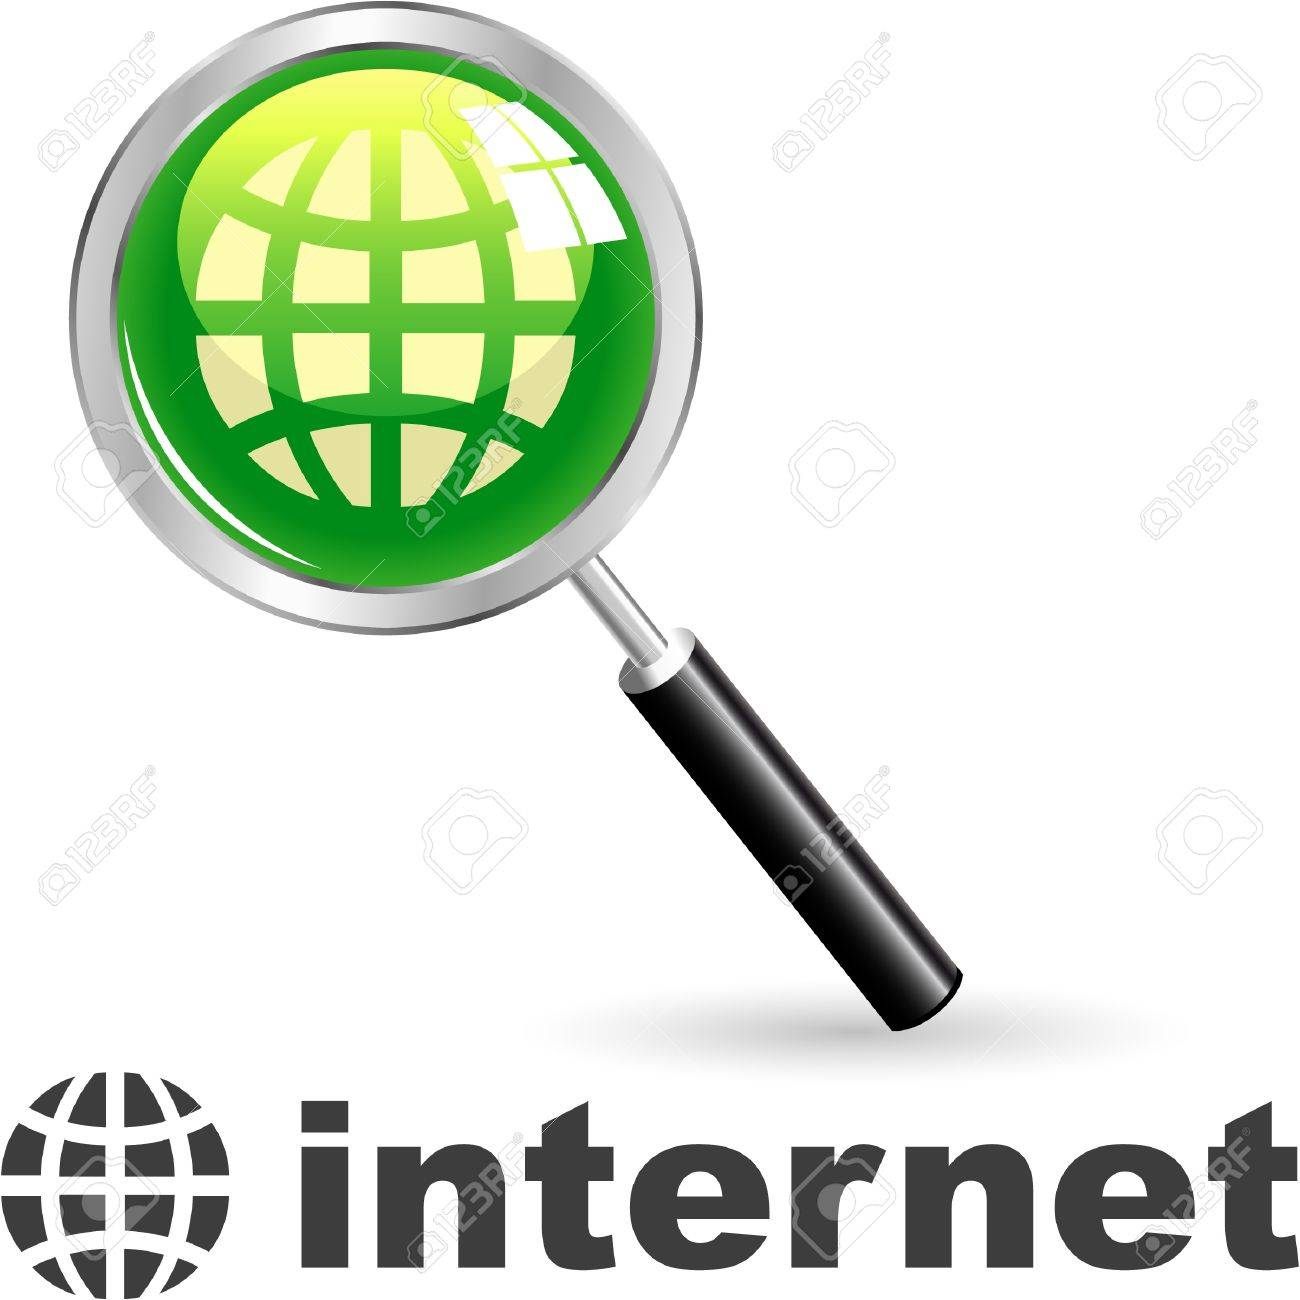 INTERNET. Vector icon. Stock Vector - 8947581